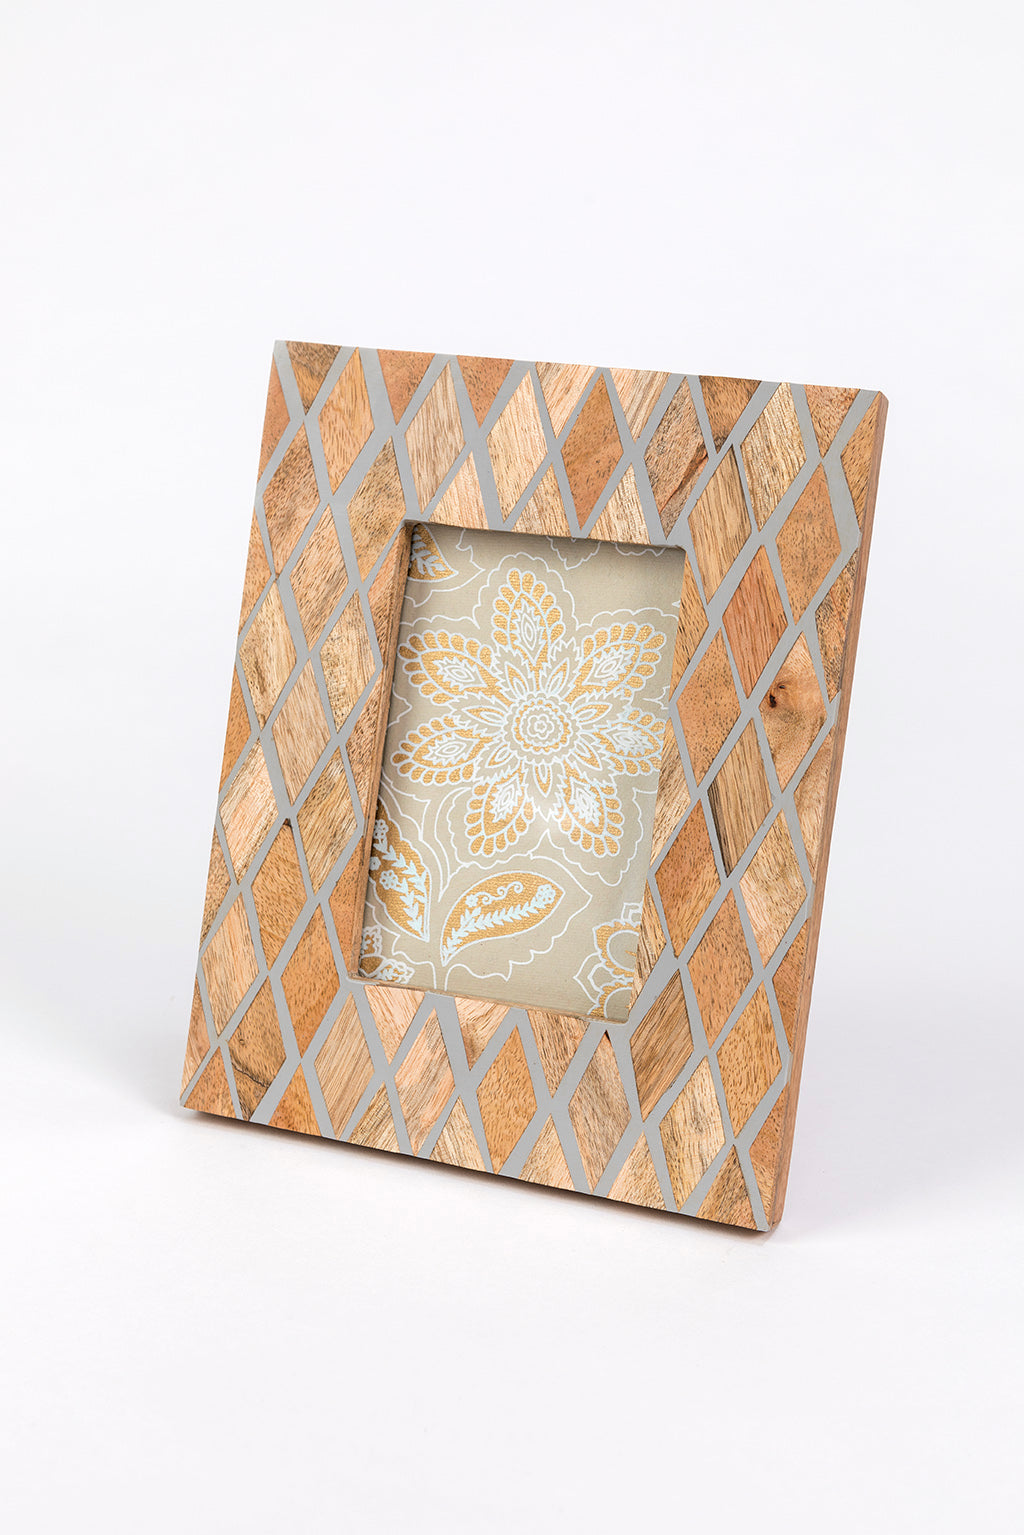 Diamond Patten Picture Frame